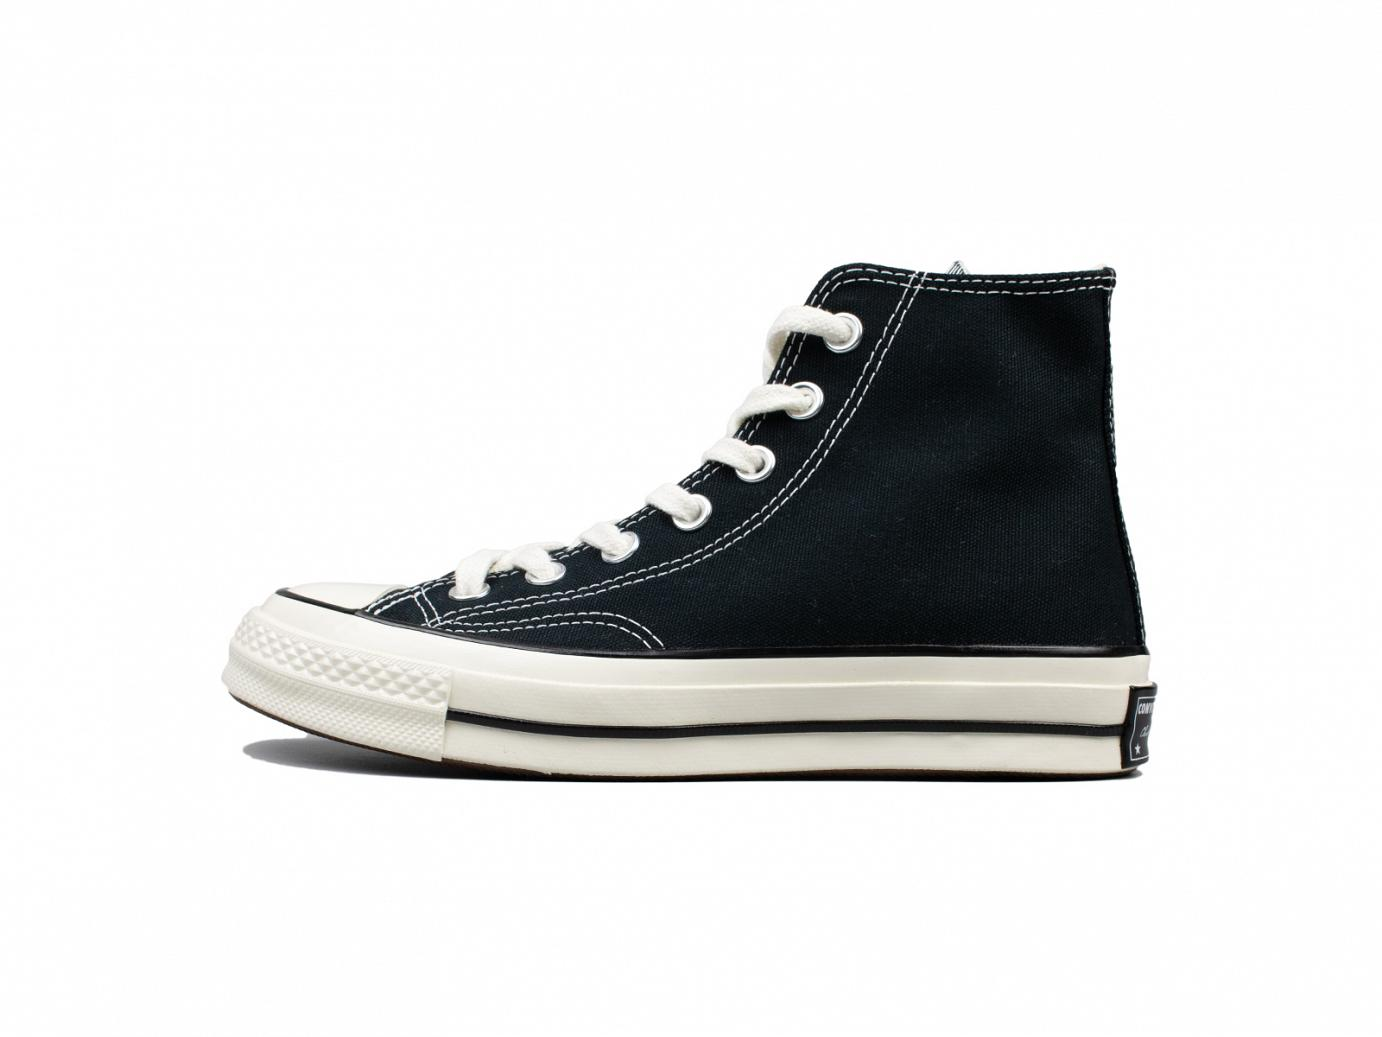 Chuck Taylor All Star Hi 70 Black New 162050c